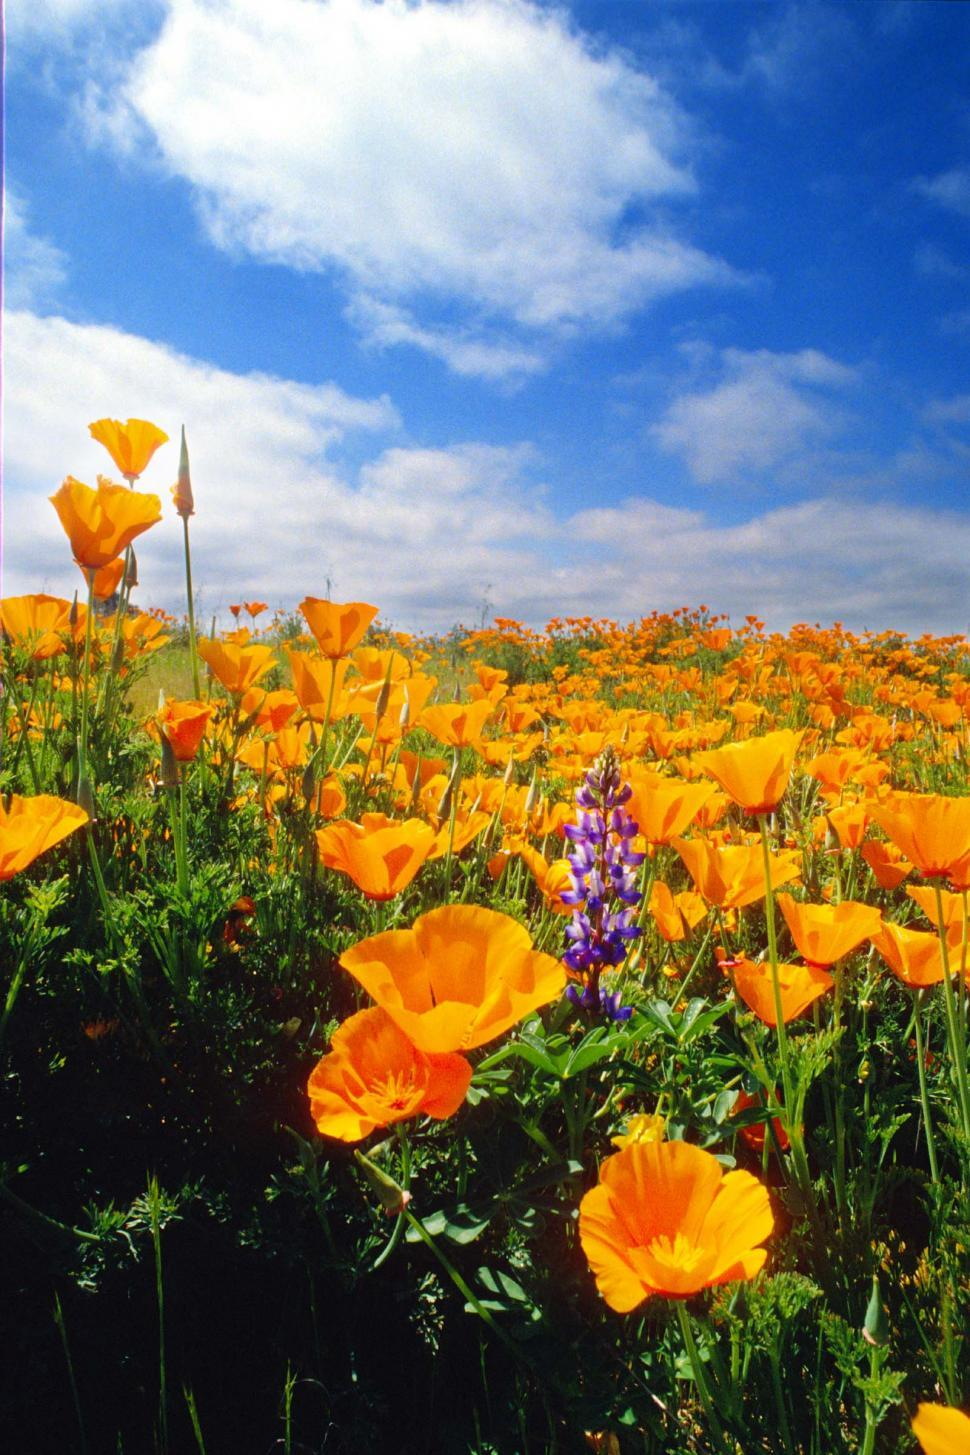 Download Free Stock Photo of Field of California poppies